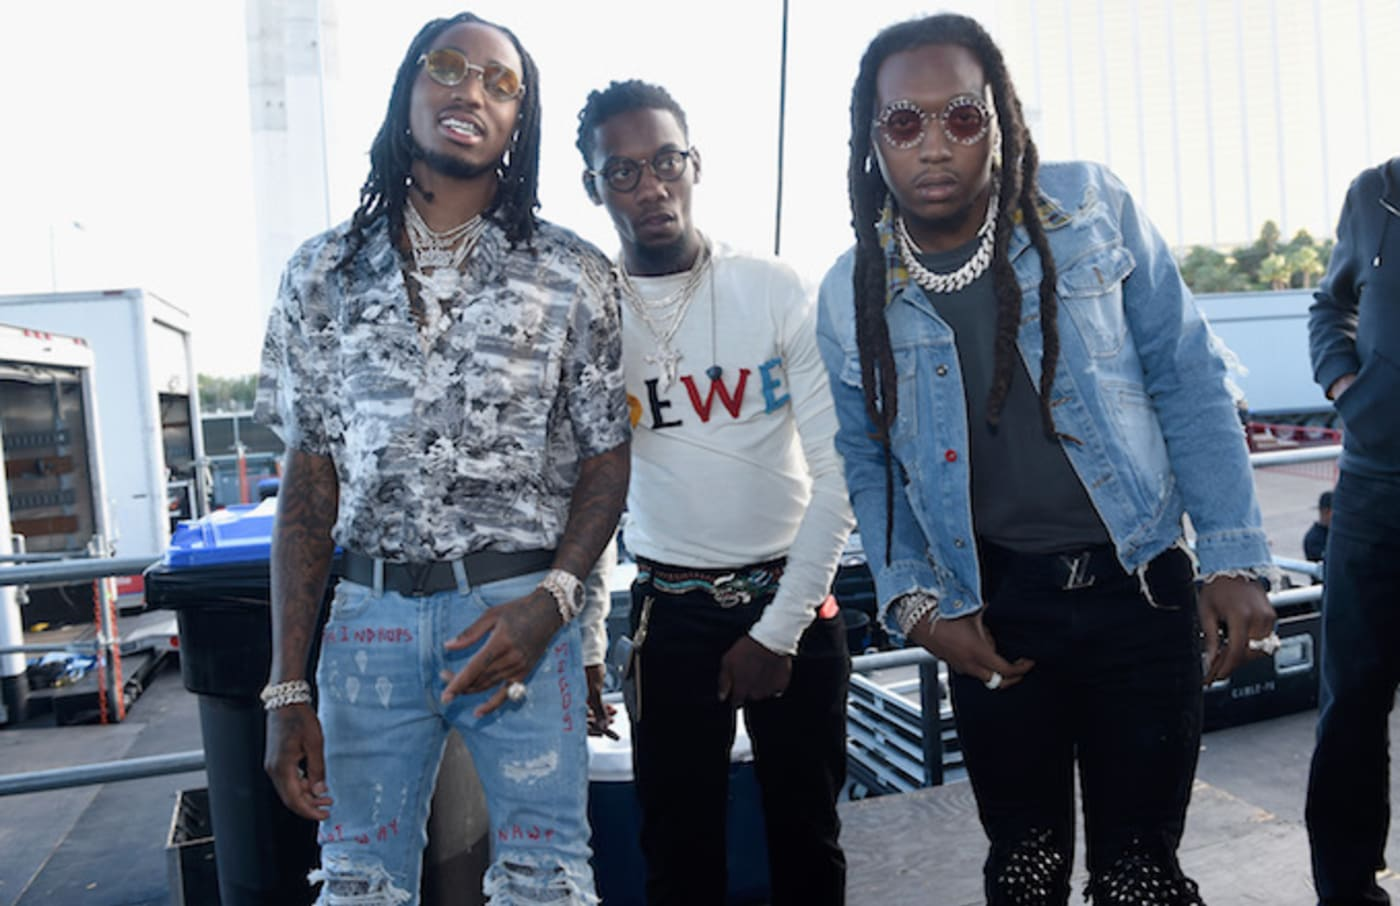 Quavo, Offset and Takeoff of Migos backstage during the Daytime Village.